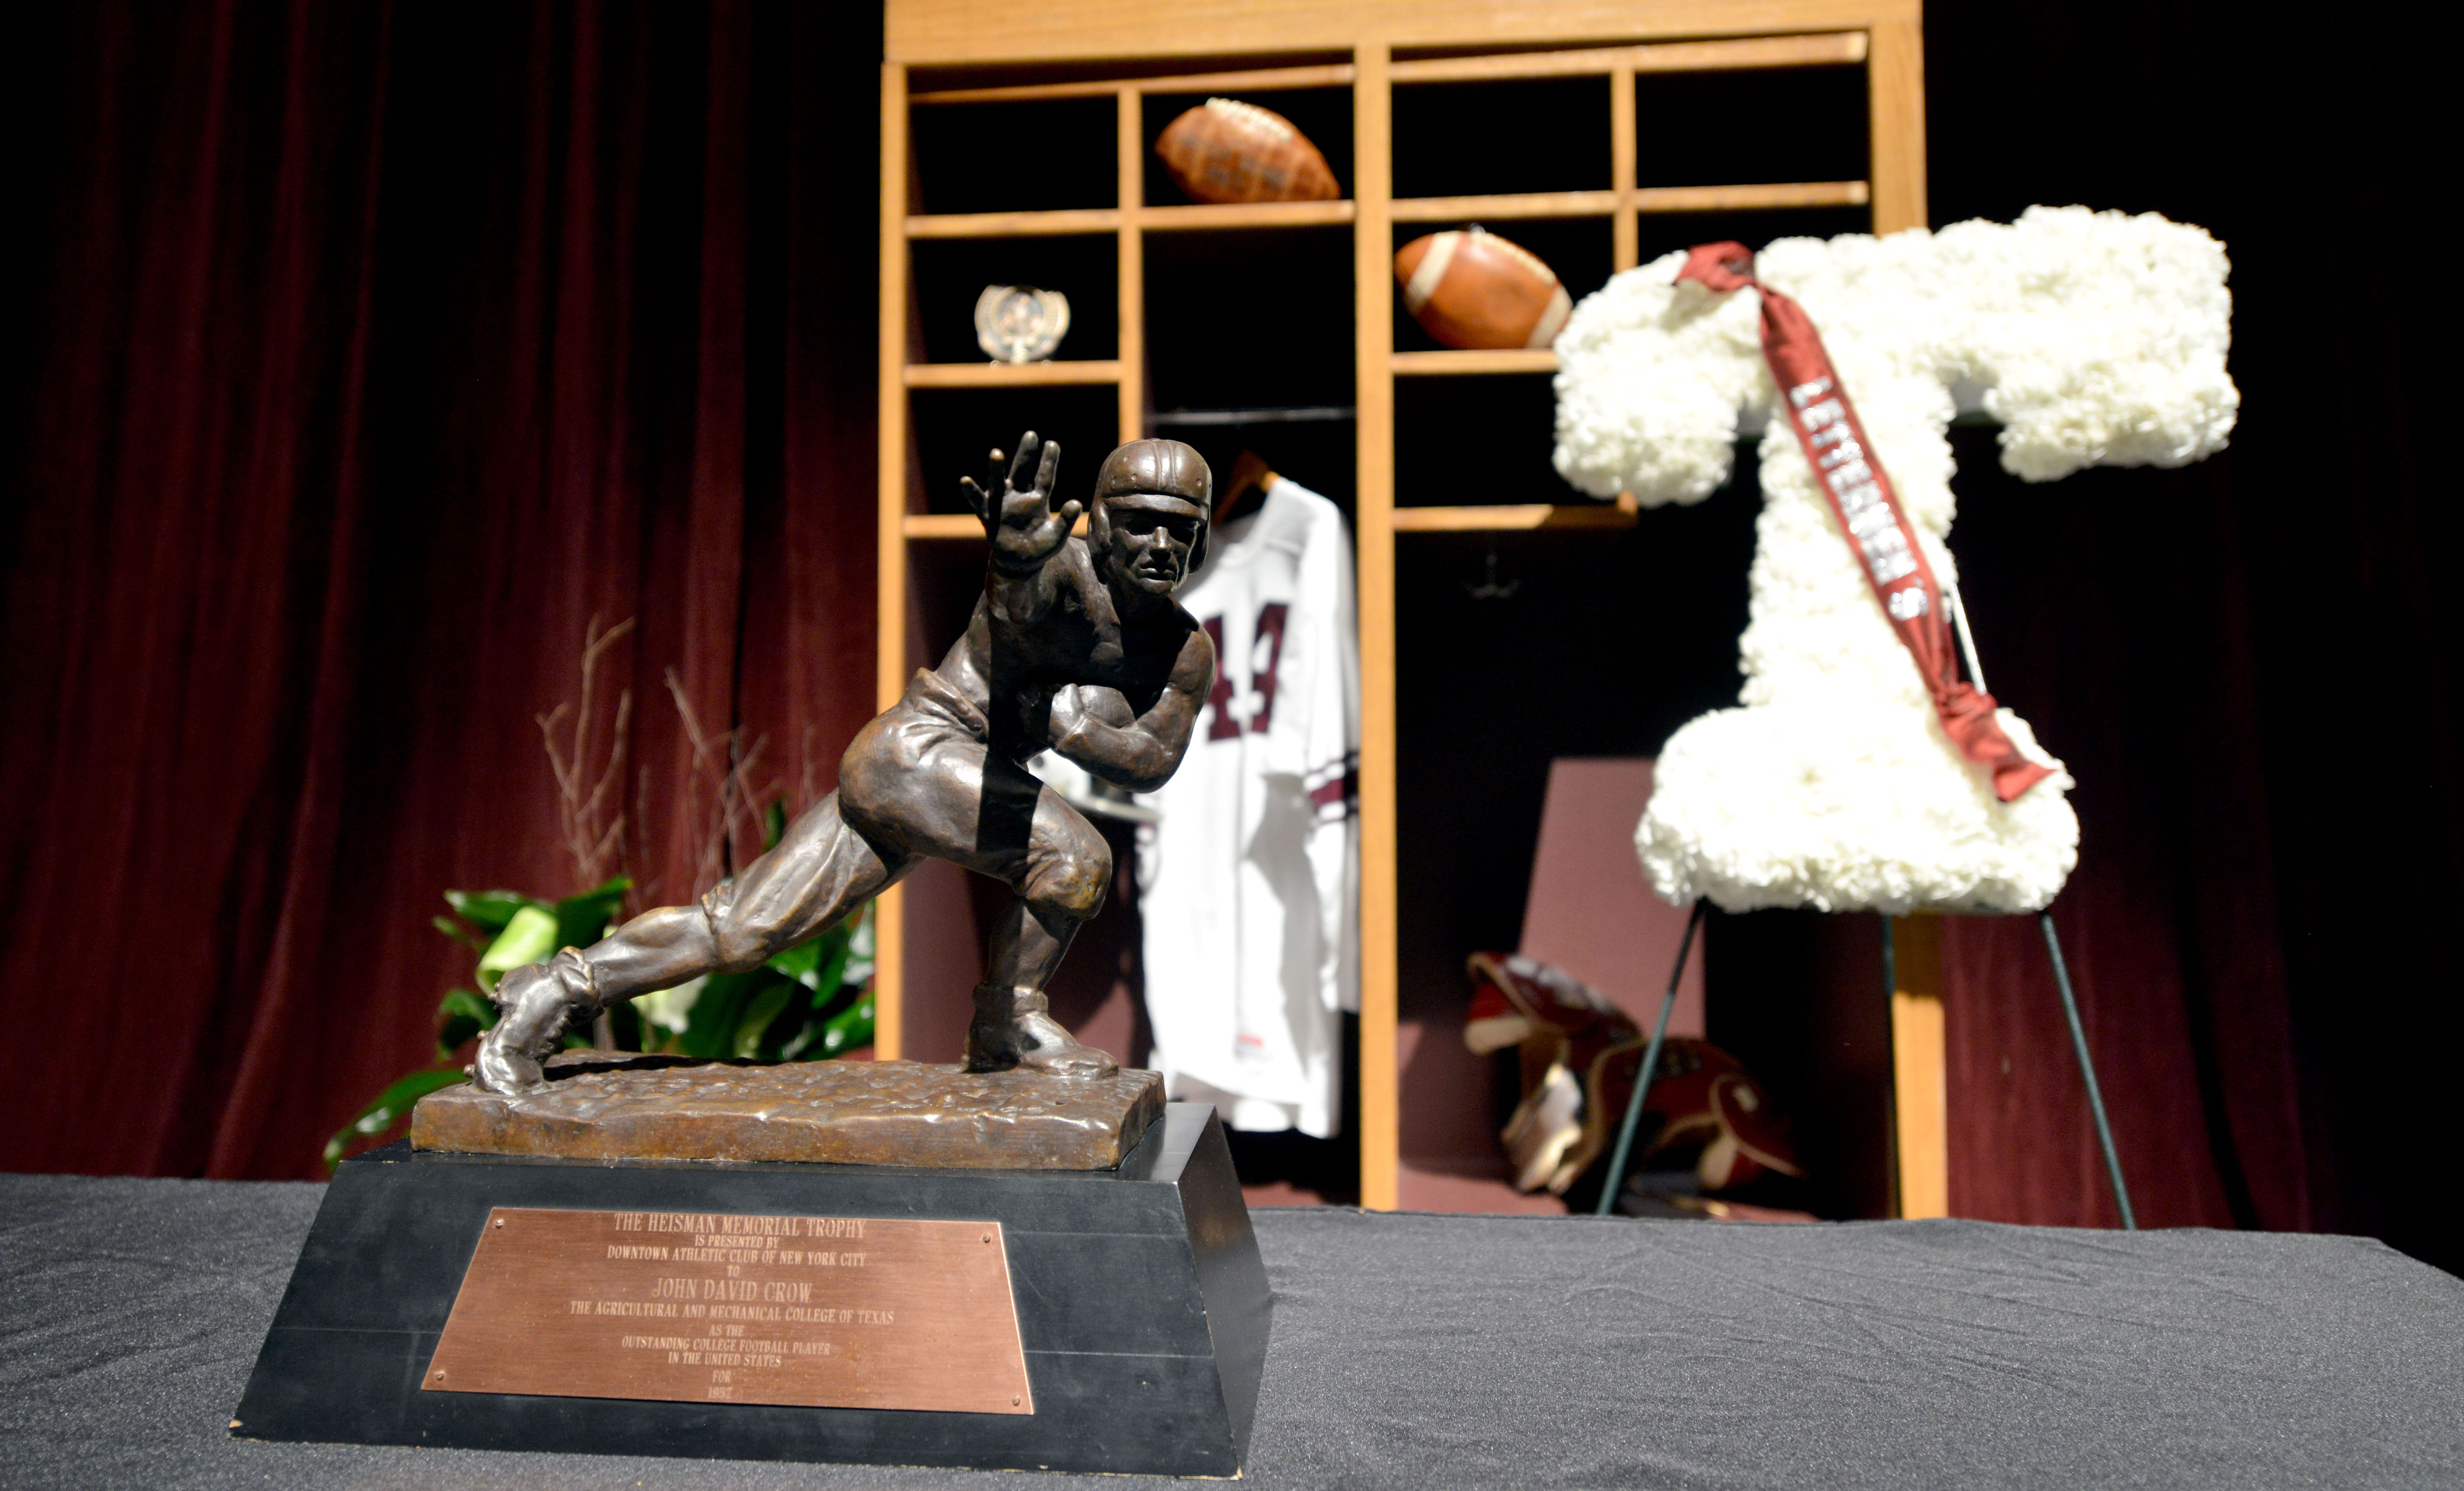 Texas A&M's John David Crow's Heisman trophy sits along side other memorabilia during a memorial service for Crow on Tuesday, June 23, 2015, at Reed Arena in College Station, Texas. Crow, the bruising running back who won the 1957 Heisman Trophy with Texa